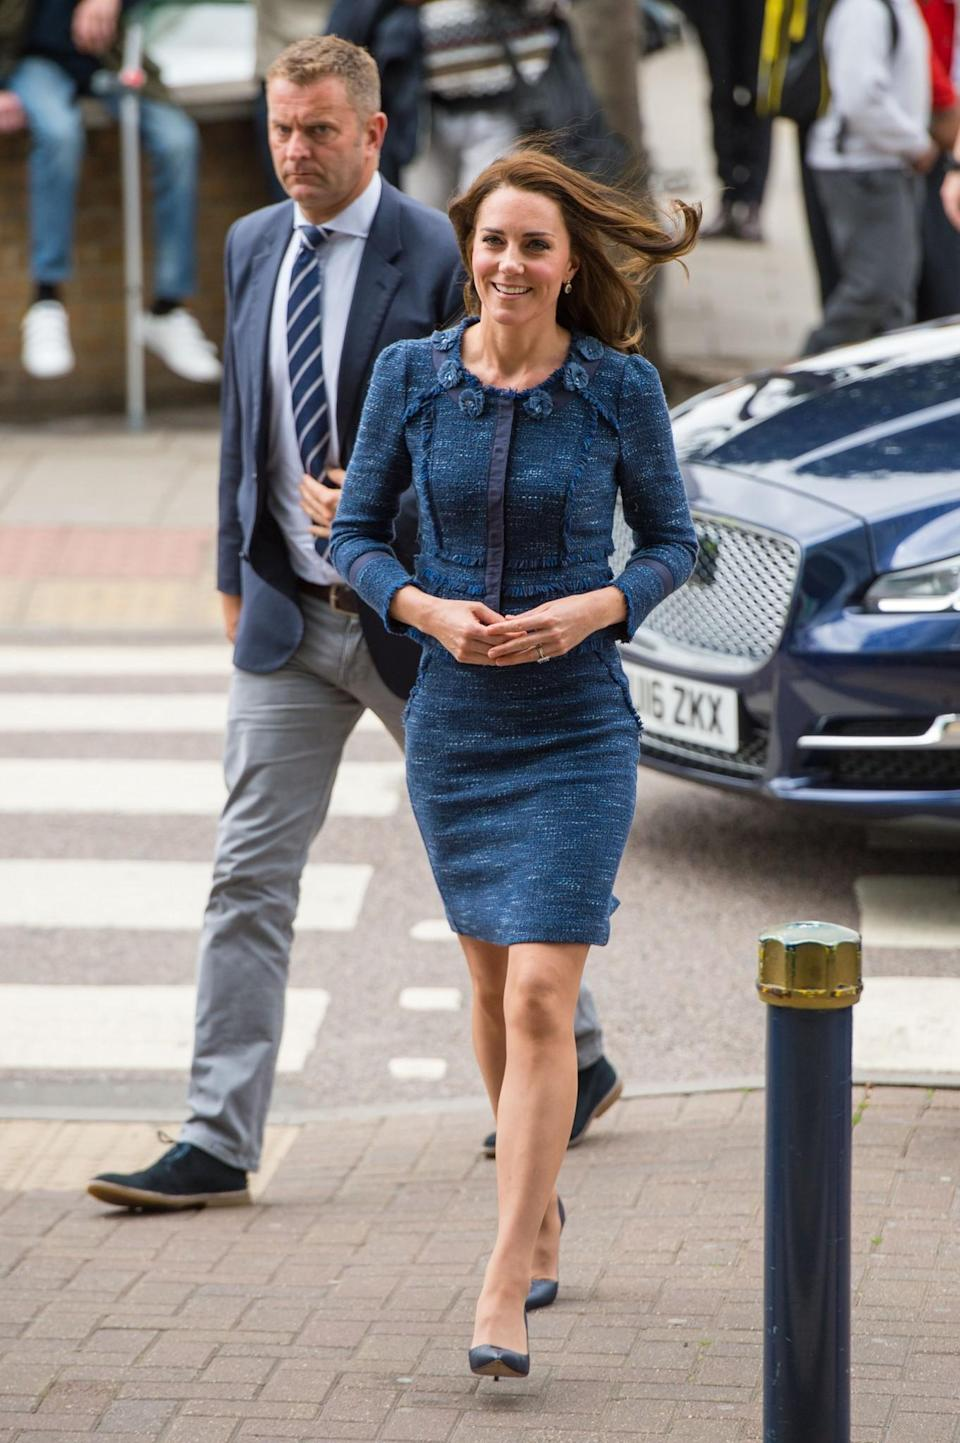 <p>The Duchess visited the survivors of the tragic London terror attack in hospital. She went for an understated workwear look to speak to both the victims and hospital staff, choosing a blue tweed skirt suit by Rebecca Taylor. Studded navy heels by Manolo Blahnik finished off the smart ensemble.<i>[Photo: PA]</i> </p>